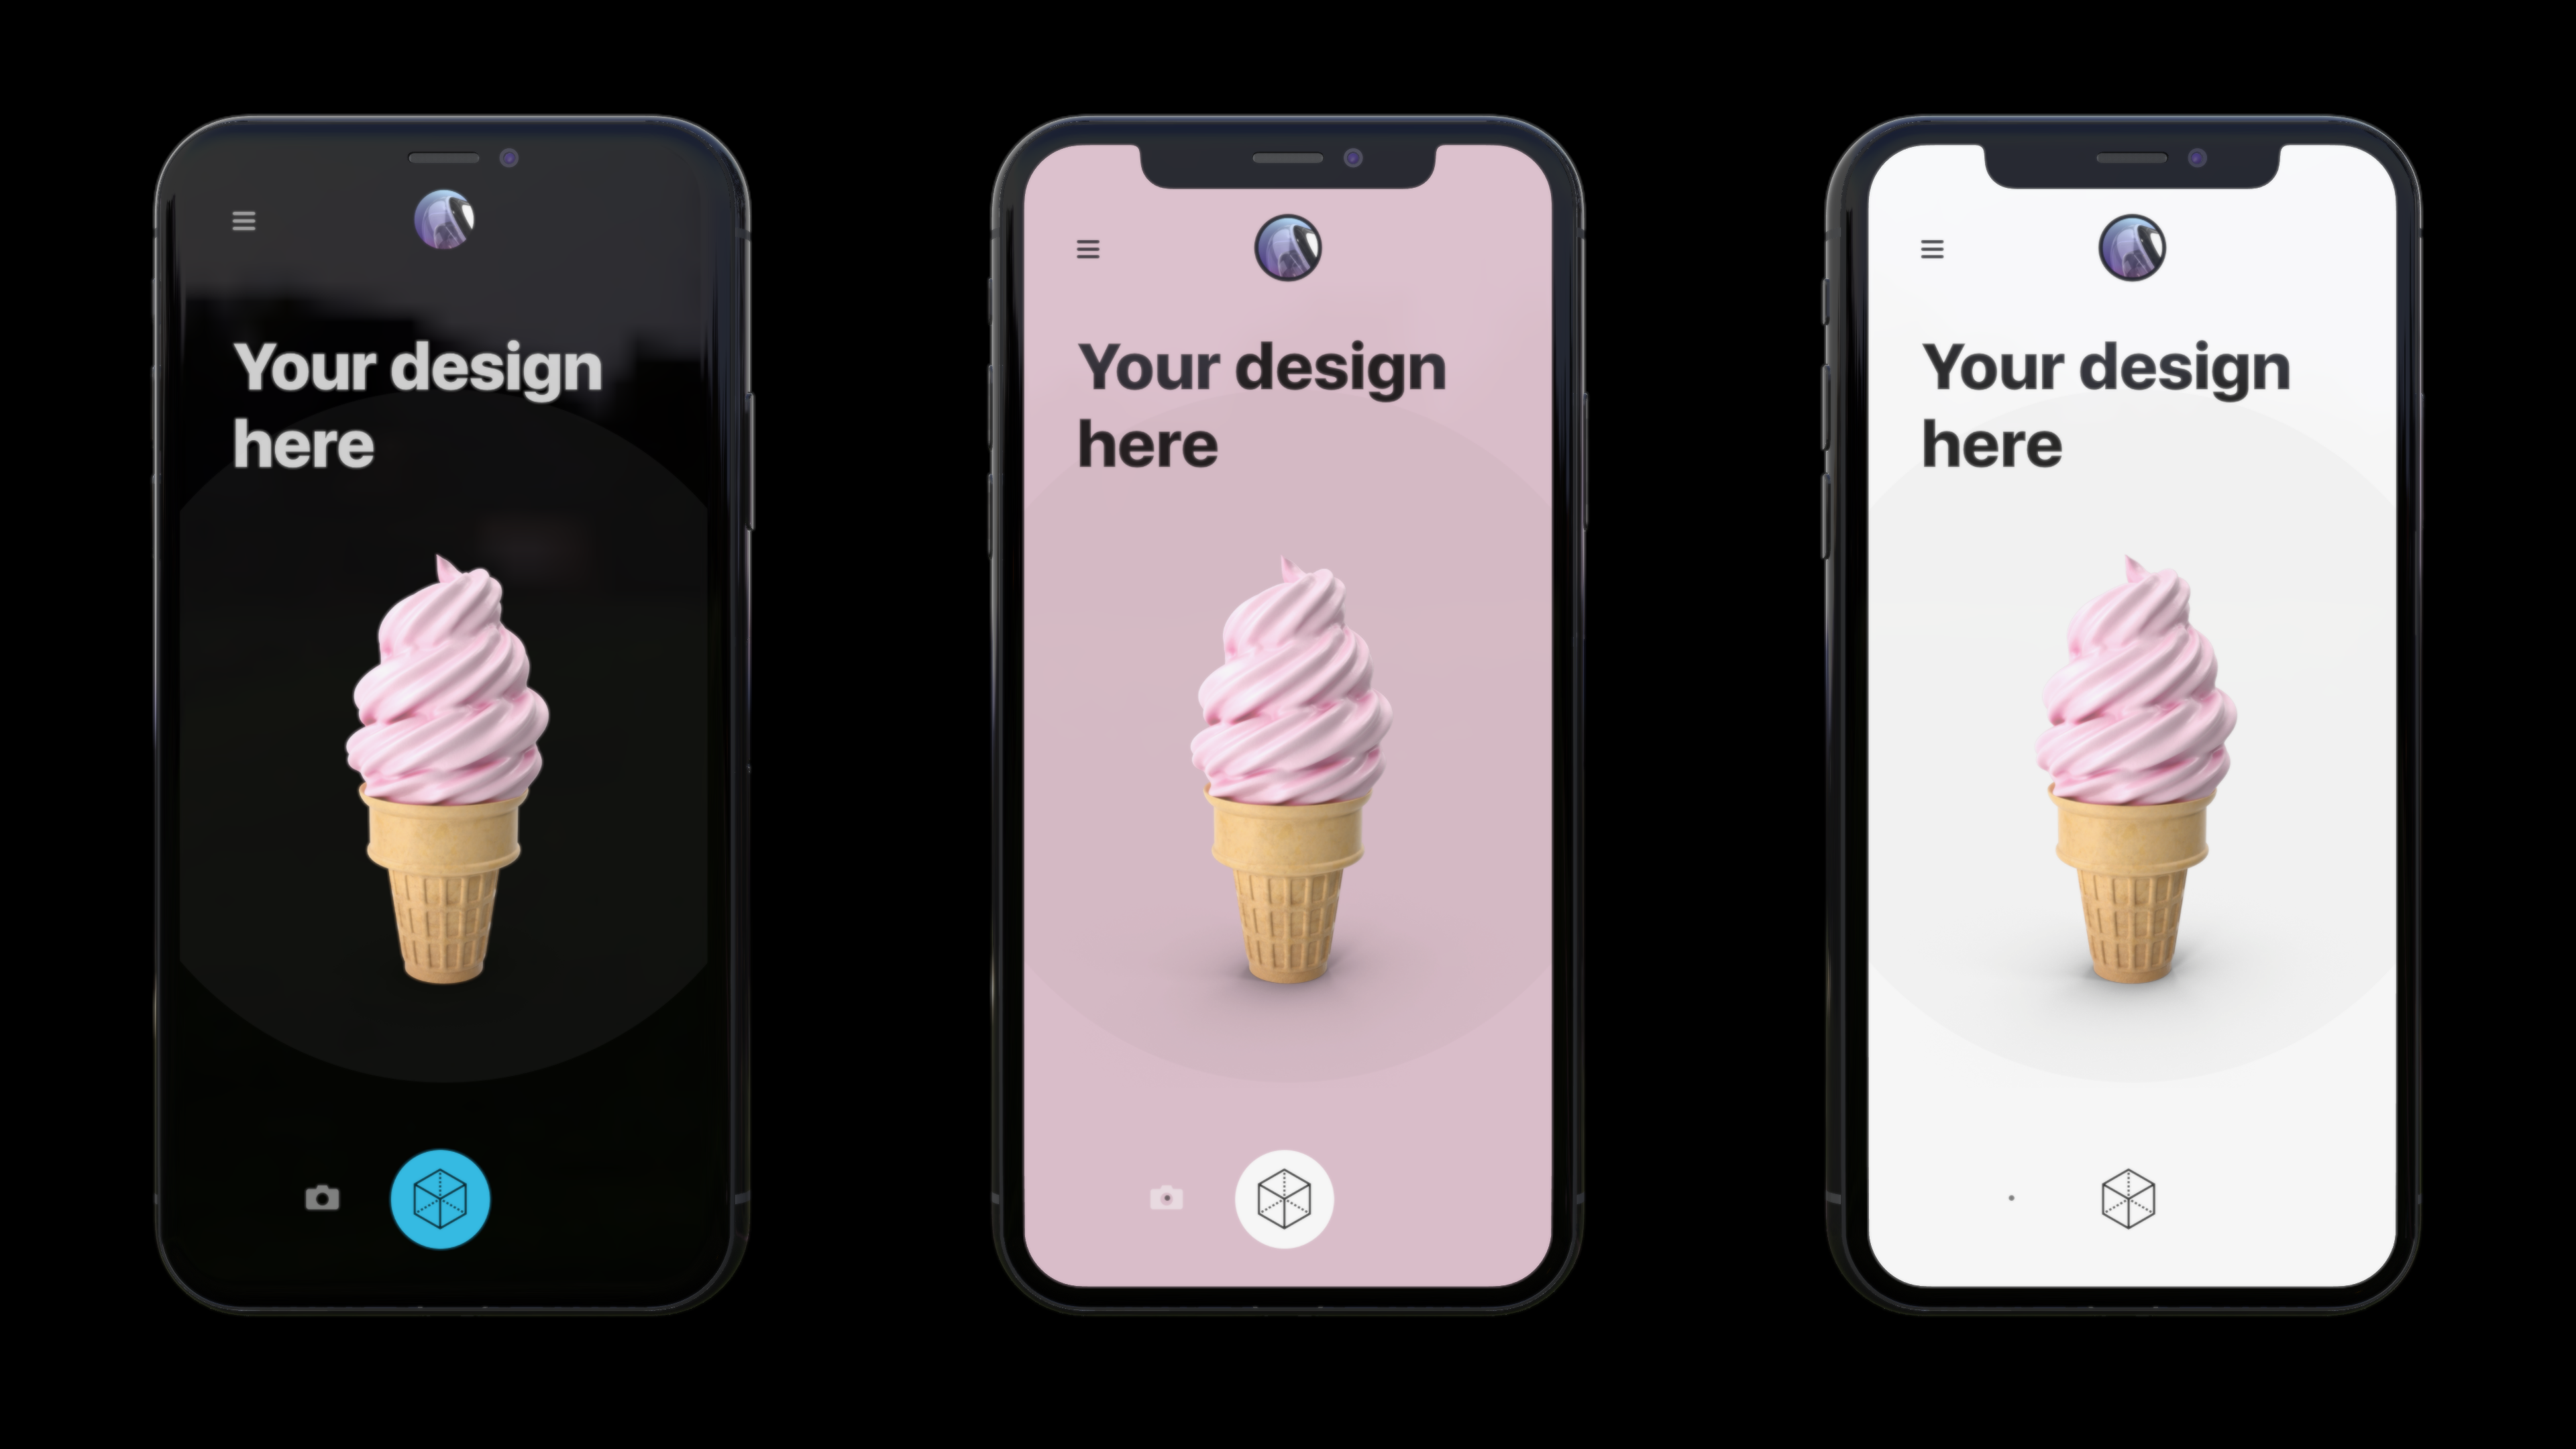 Three iphone mockups next to each other